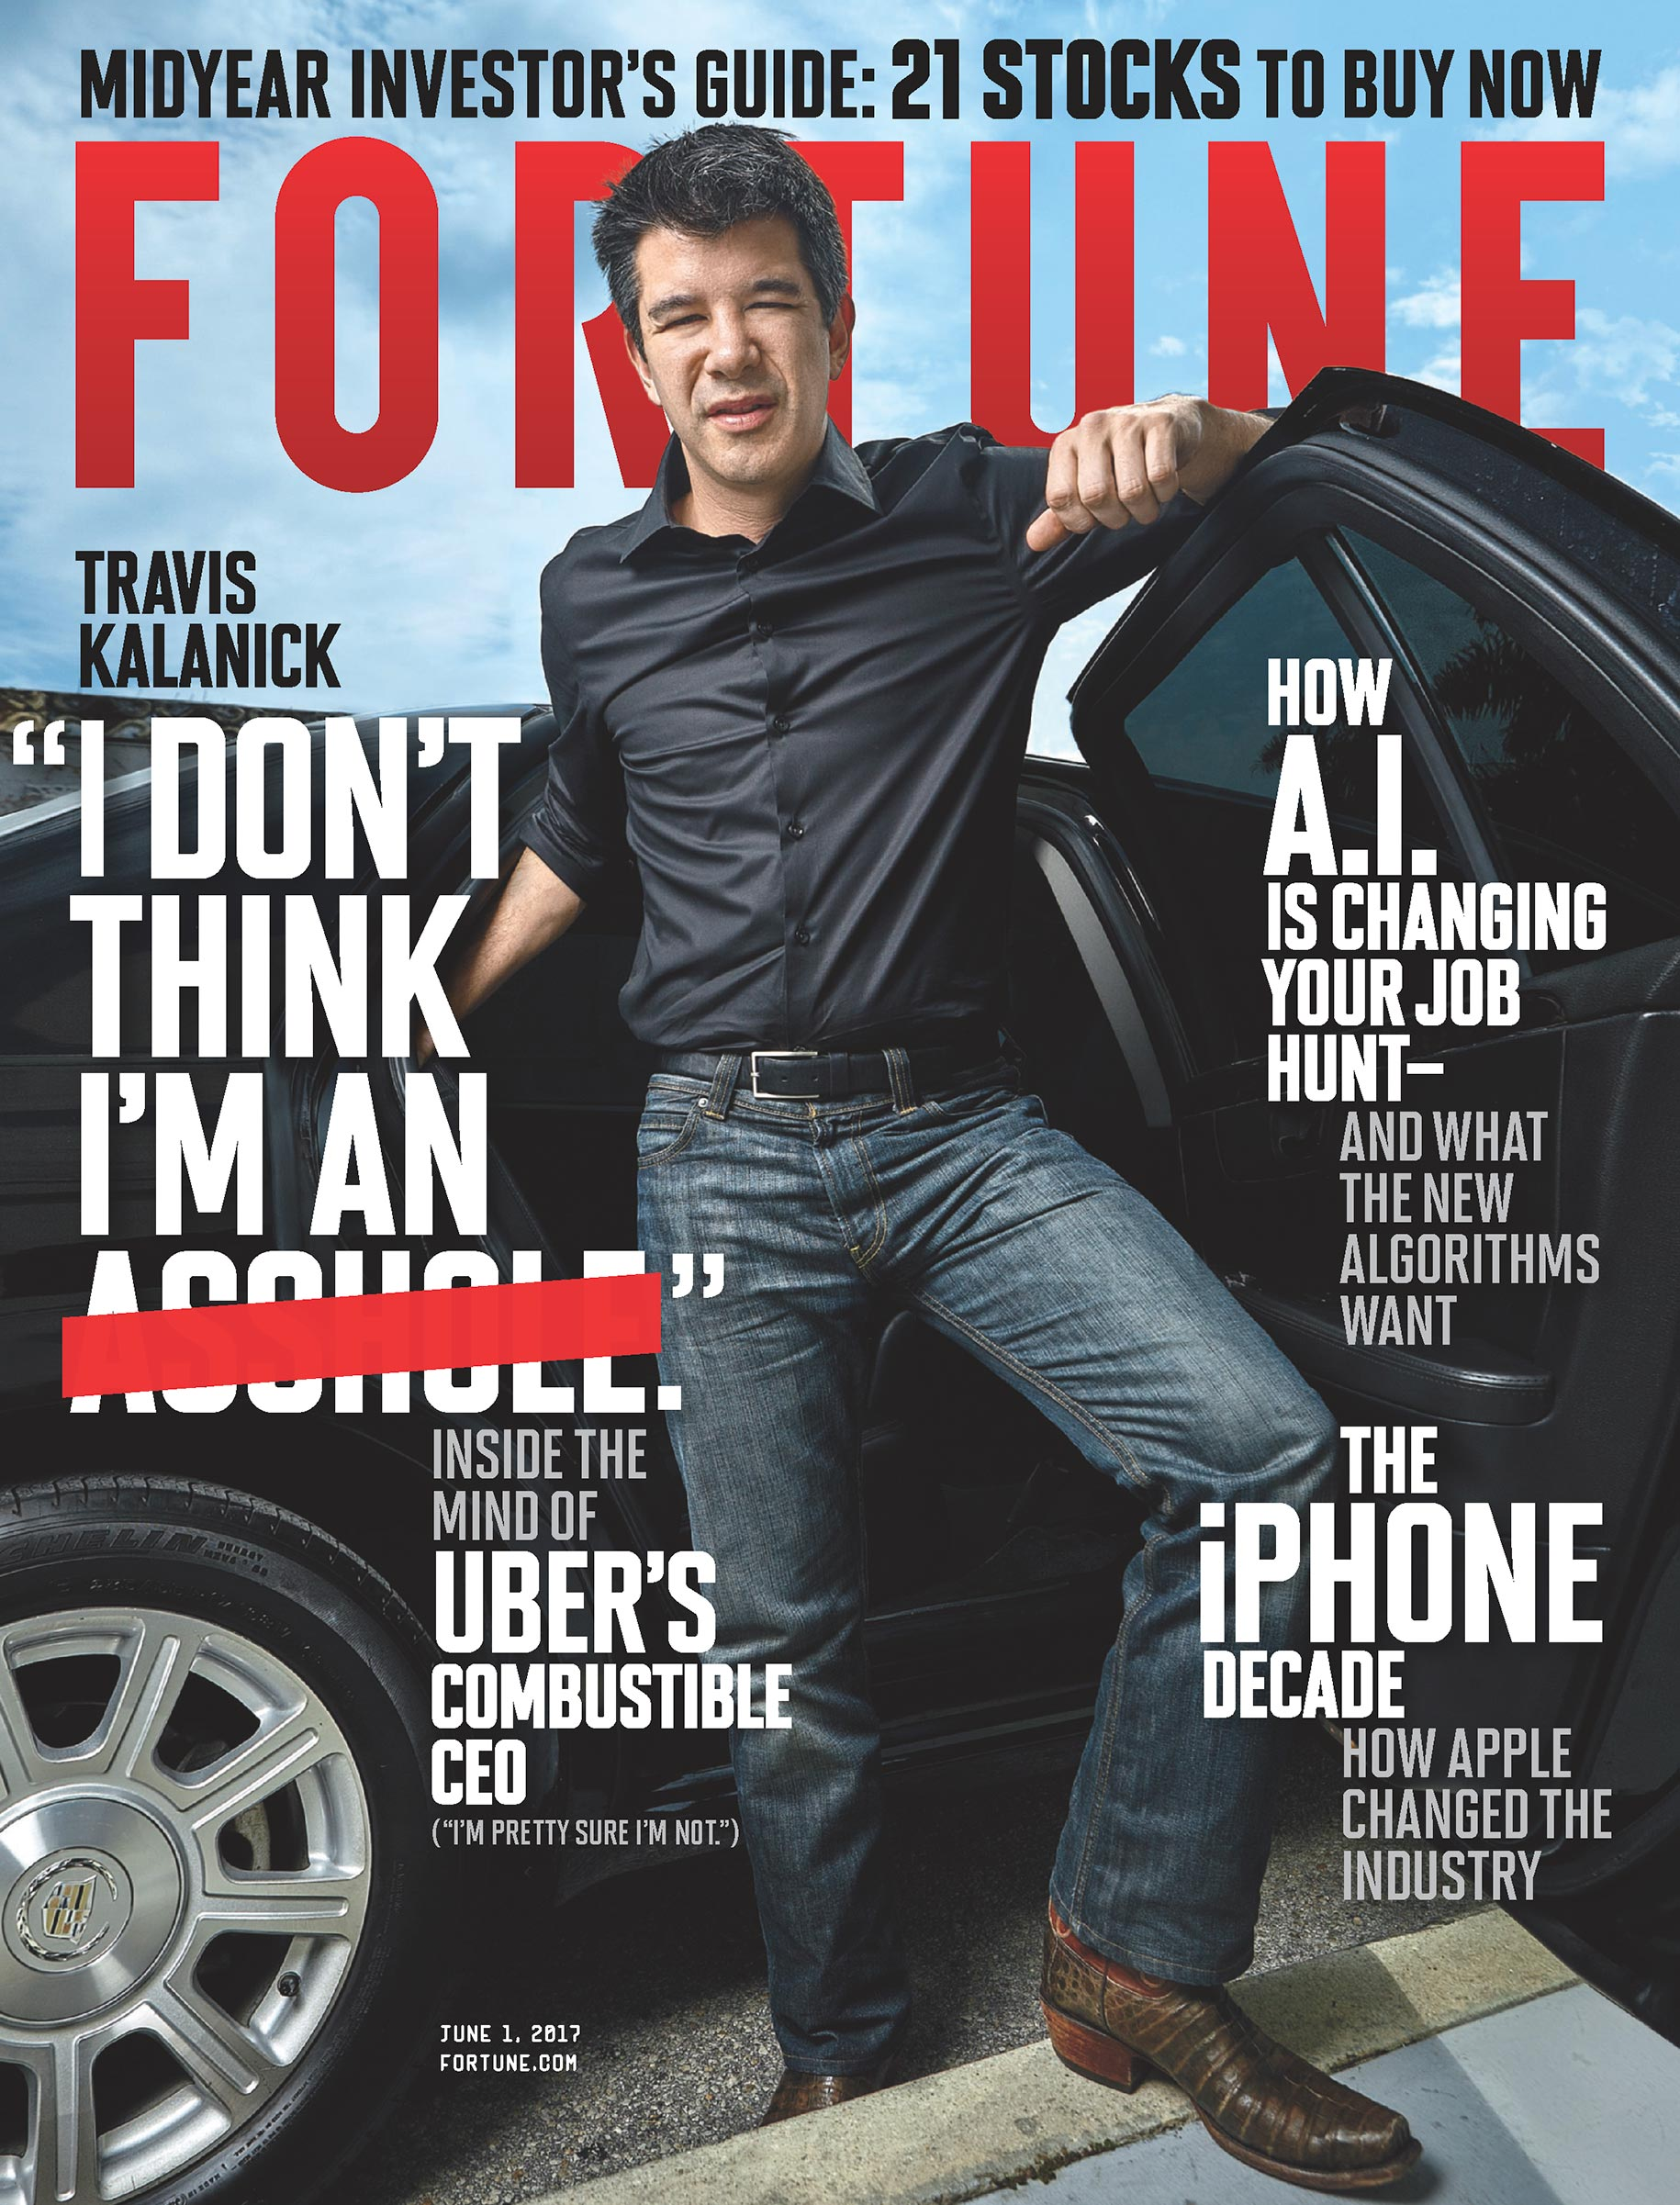 Travis Kalanick | CEO of Uber